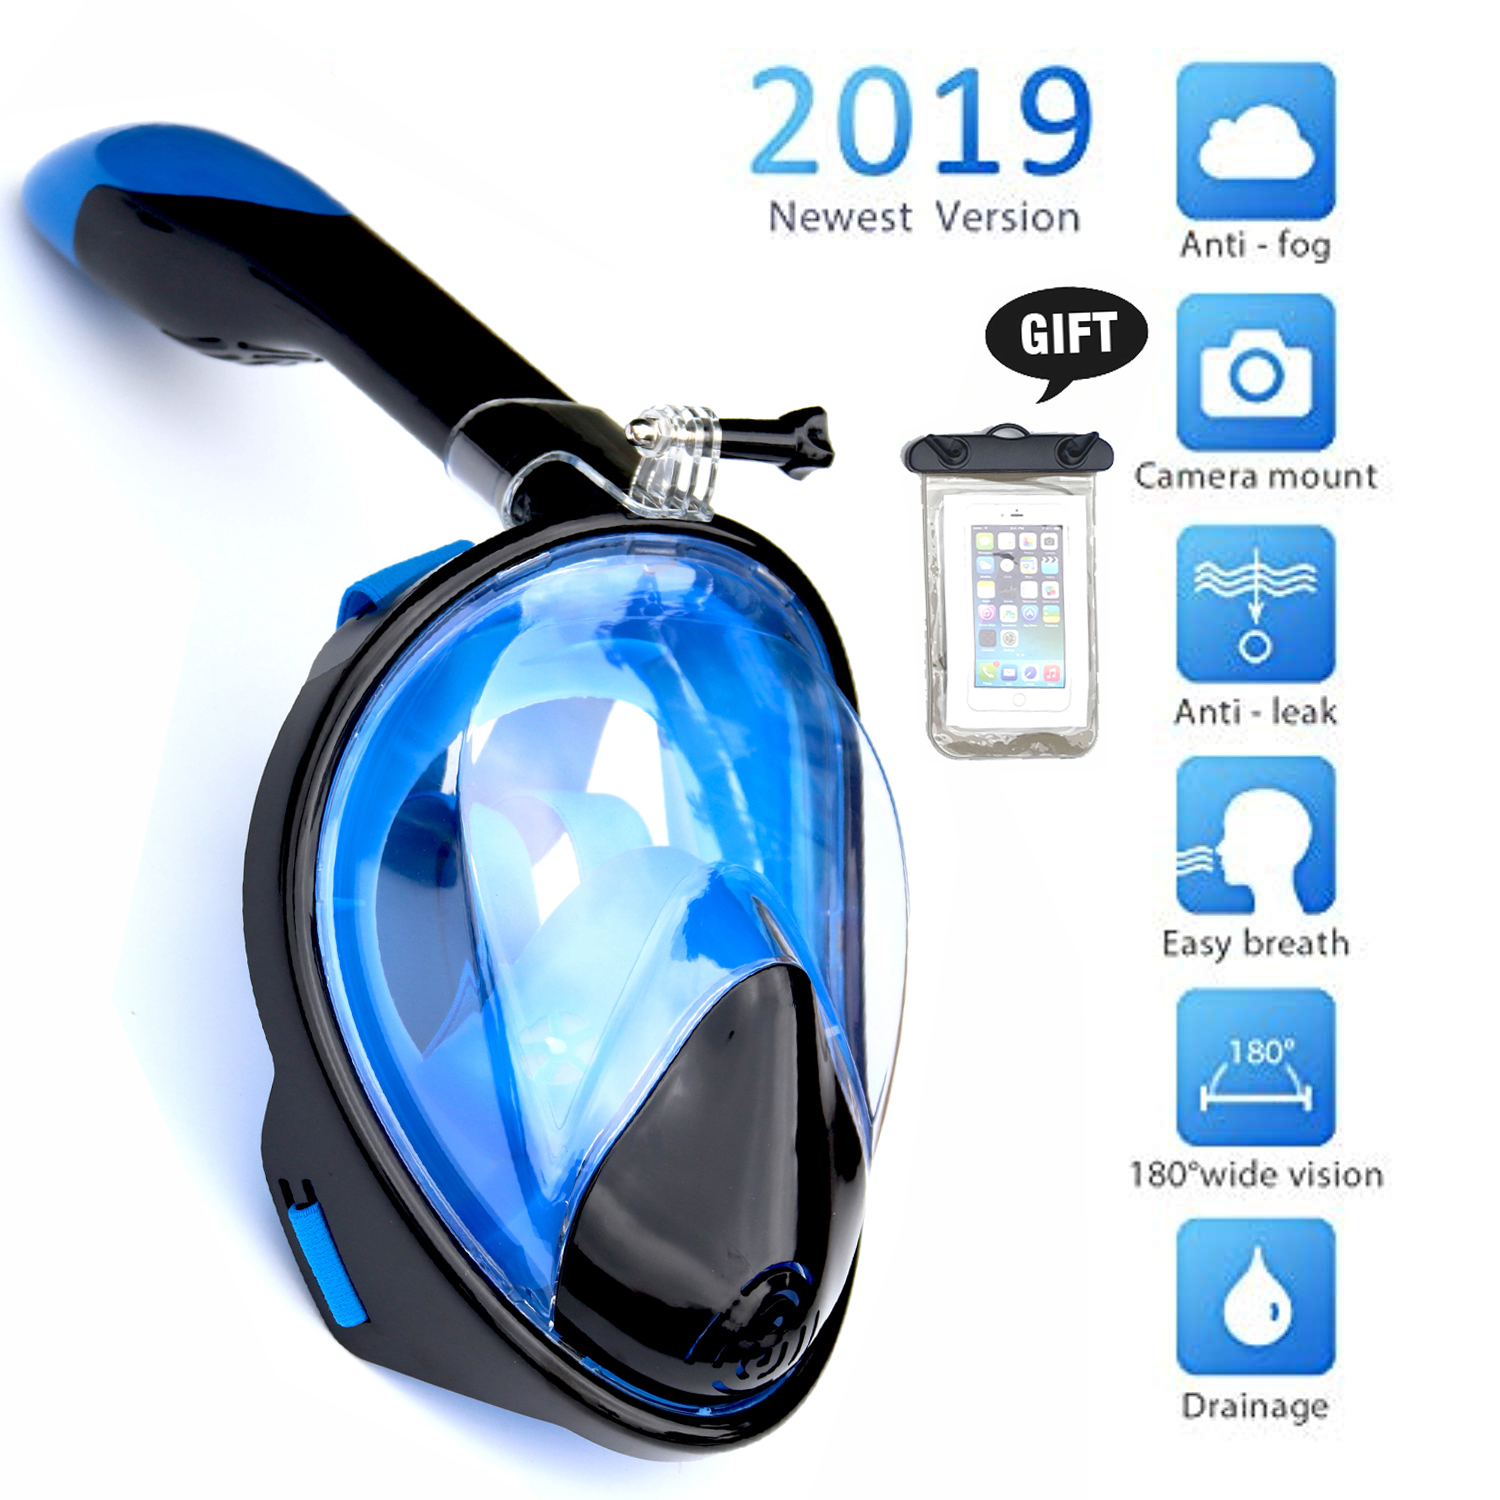 Snorkeling Mask Set Full Face Diving Mask Anti-Fog Free Breathing 180 Panoramic Wide View Scuba Swmiming Mask